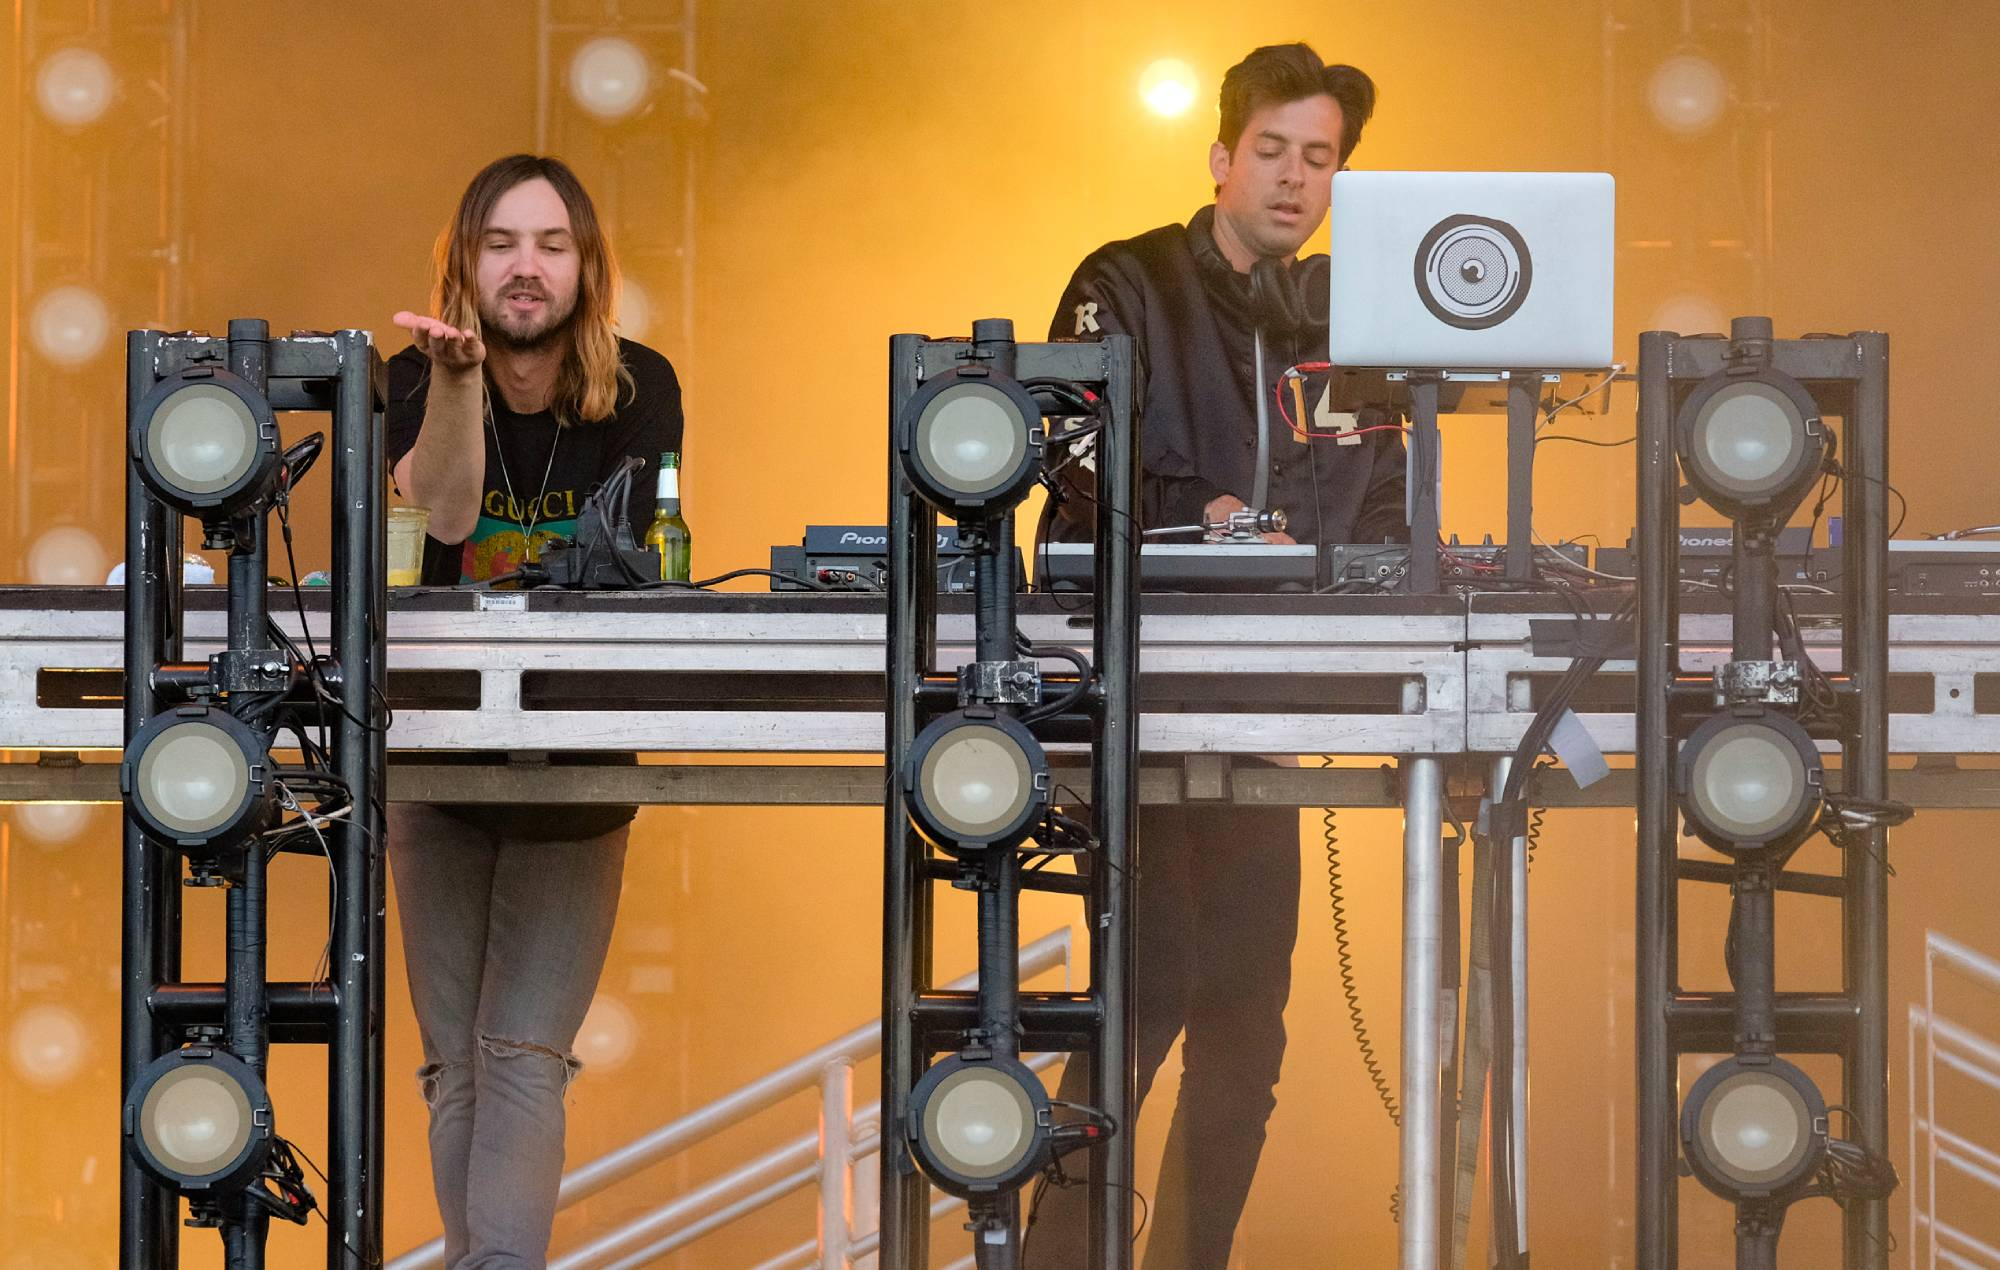 New Mark Ronson podcast set to feature Tame Impala, Haim, David Byrne and more